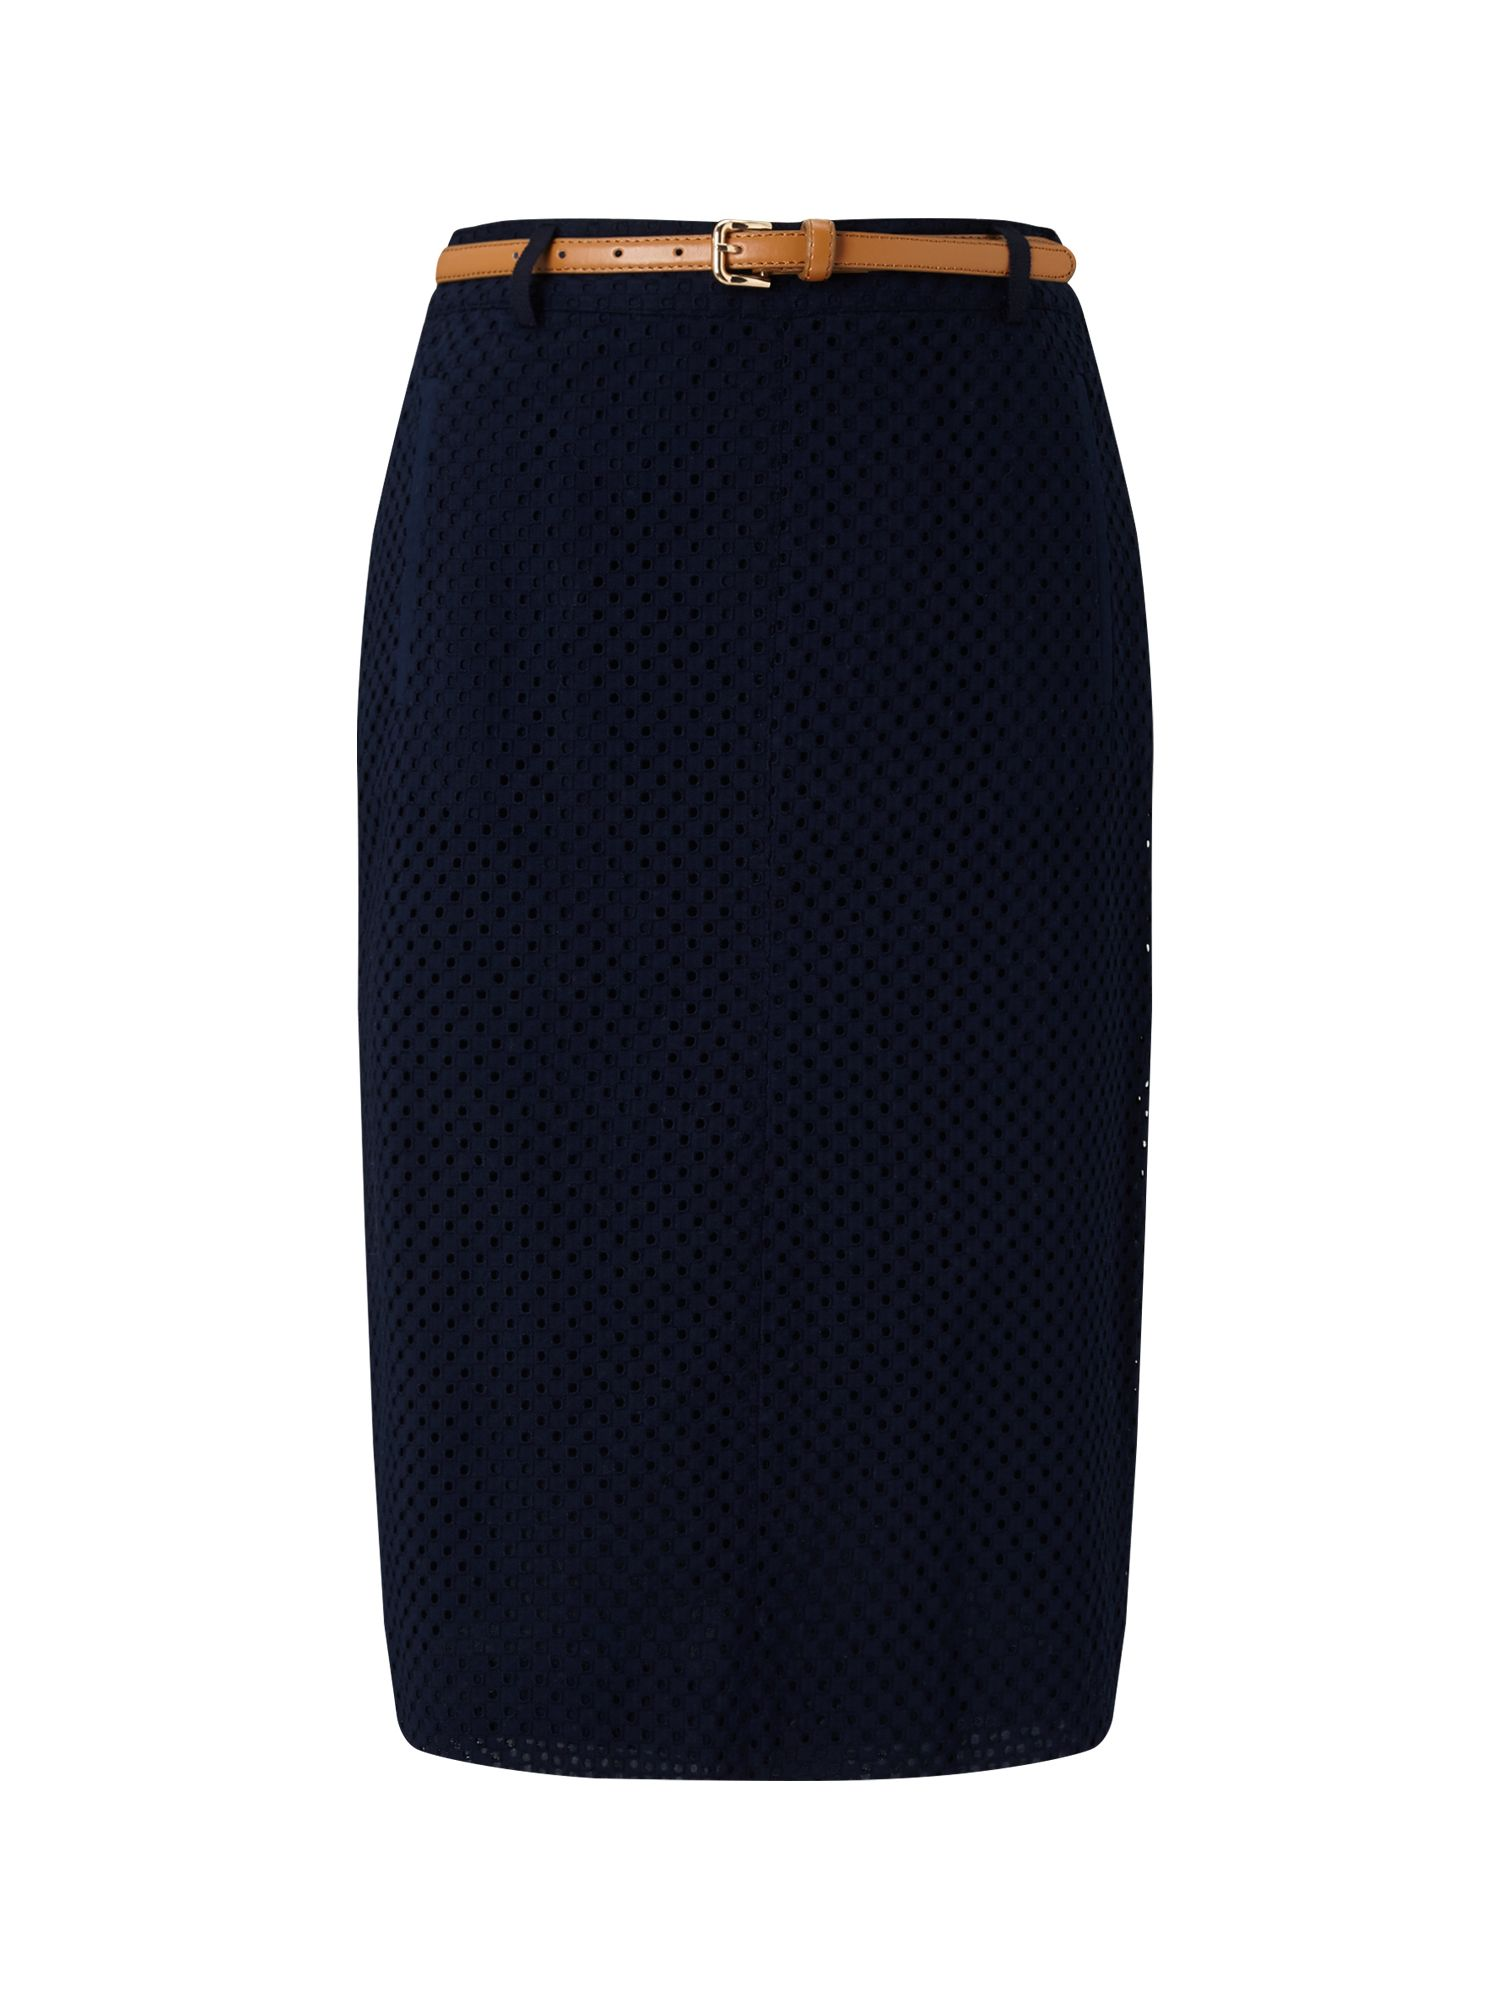 Eastex Broderie Skirt, Blue